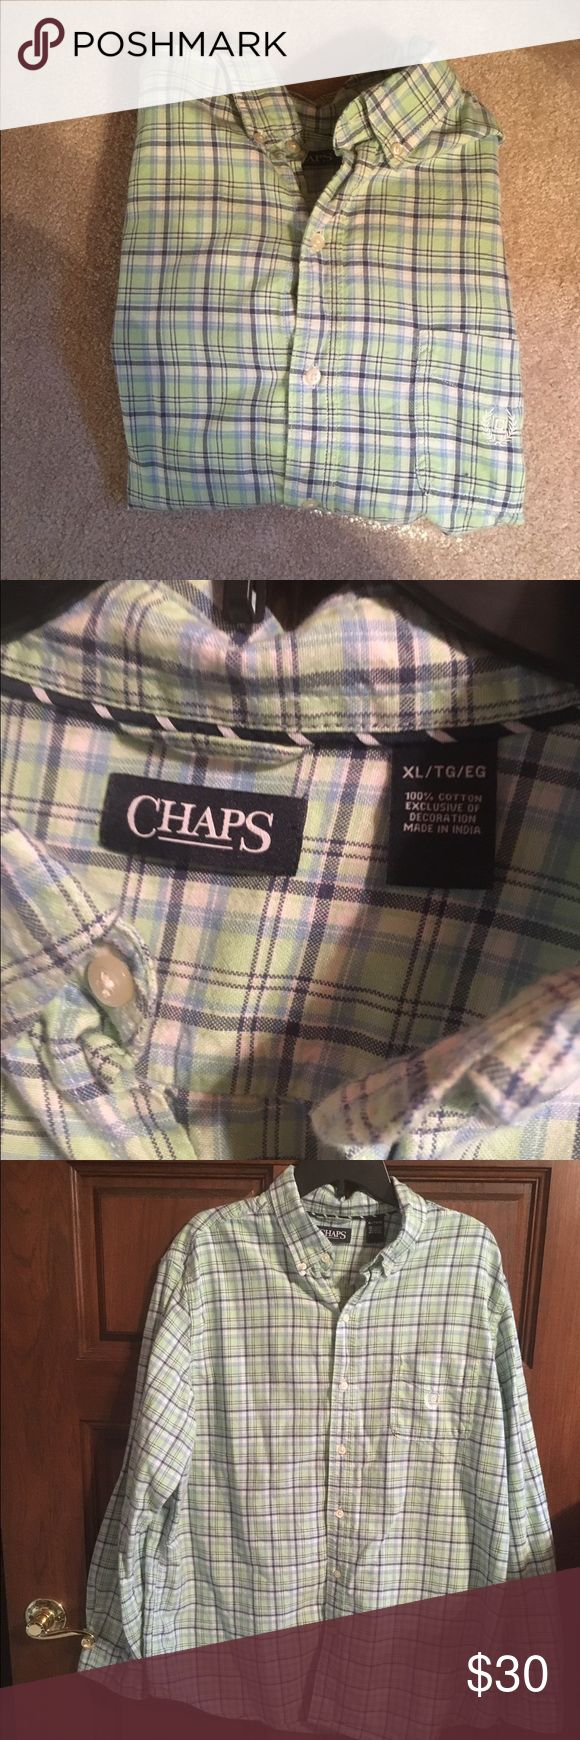 Chaps Like New Button Up Shirt XL Like new Chaps Shirt. Only worn out to dinner a couple times. No holes or stains. From a smoke free home. Size xl. Chaps Shirts Dress Shirts